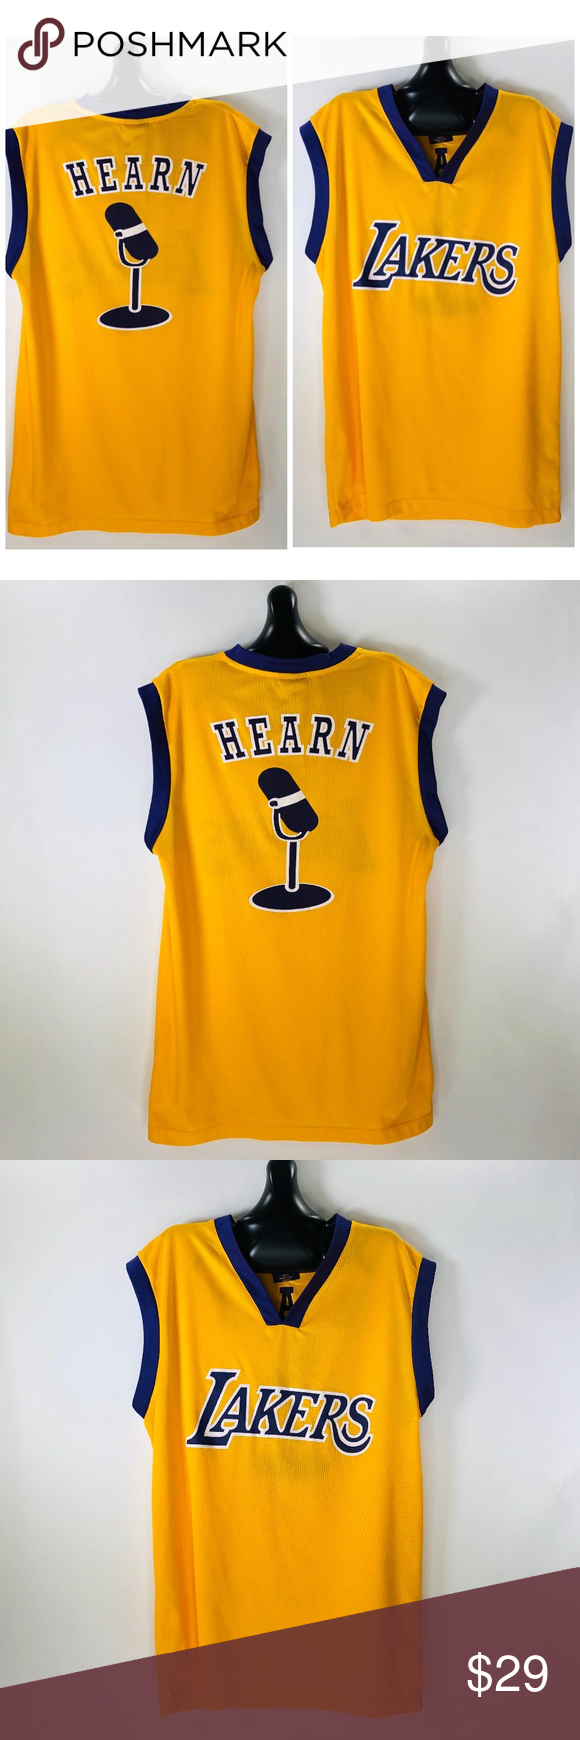 7b500df00 Los Angeles LA Lakers Chick Hearn Promo Jersey XL Los Angeles LA Lakers  Chick Hearn Promo Jersey XL Lakers Shirts Tank Tops